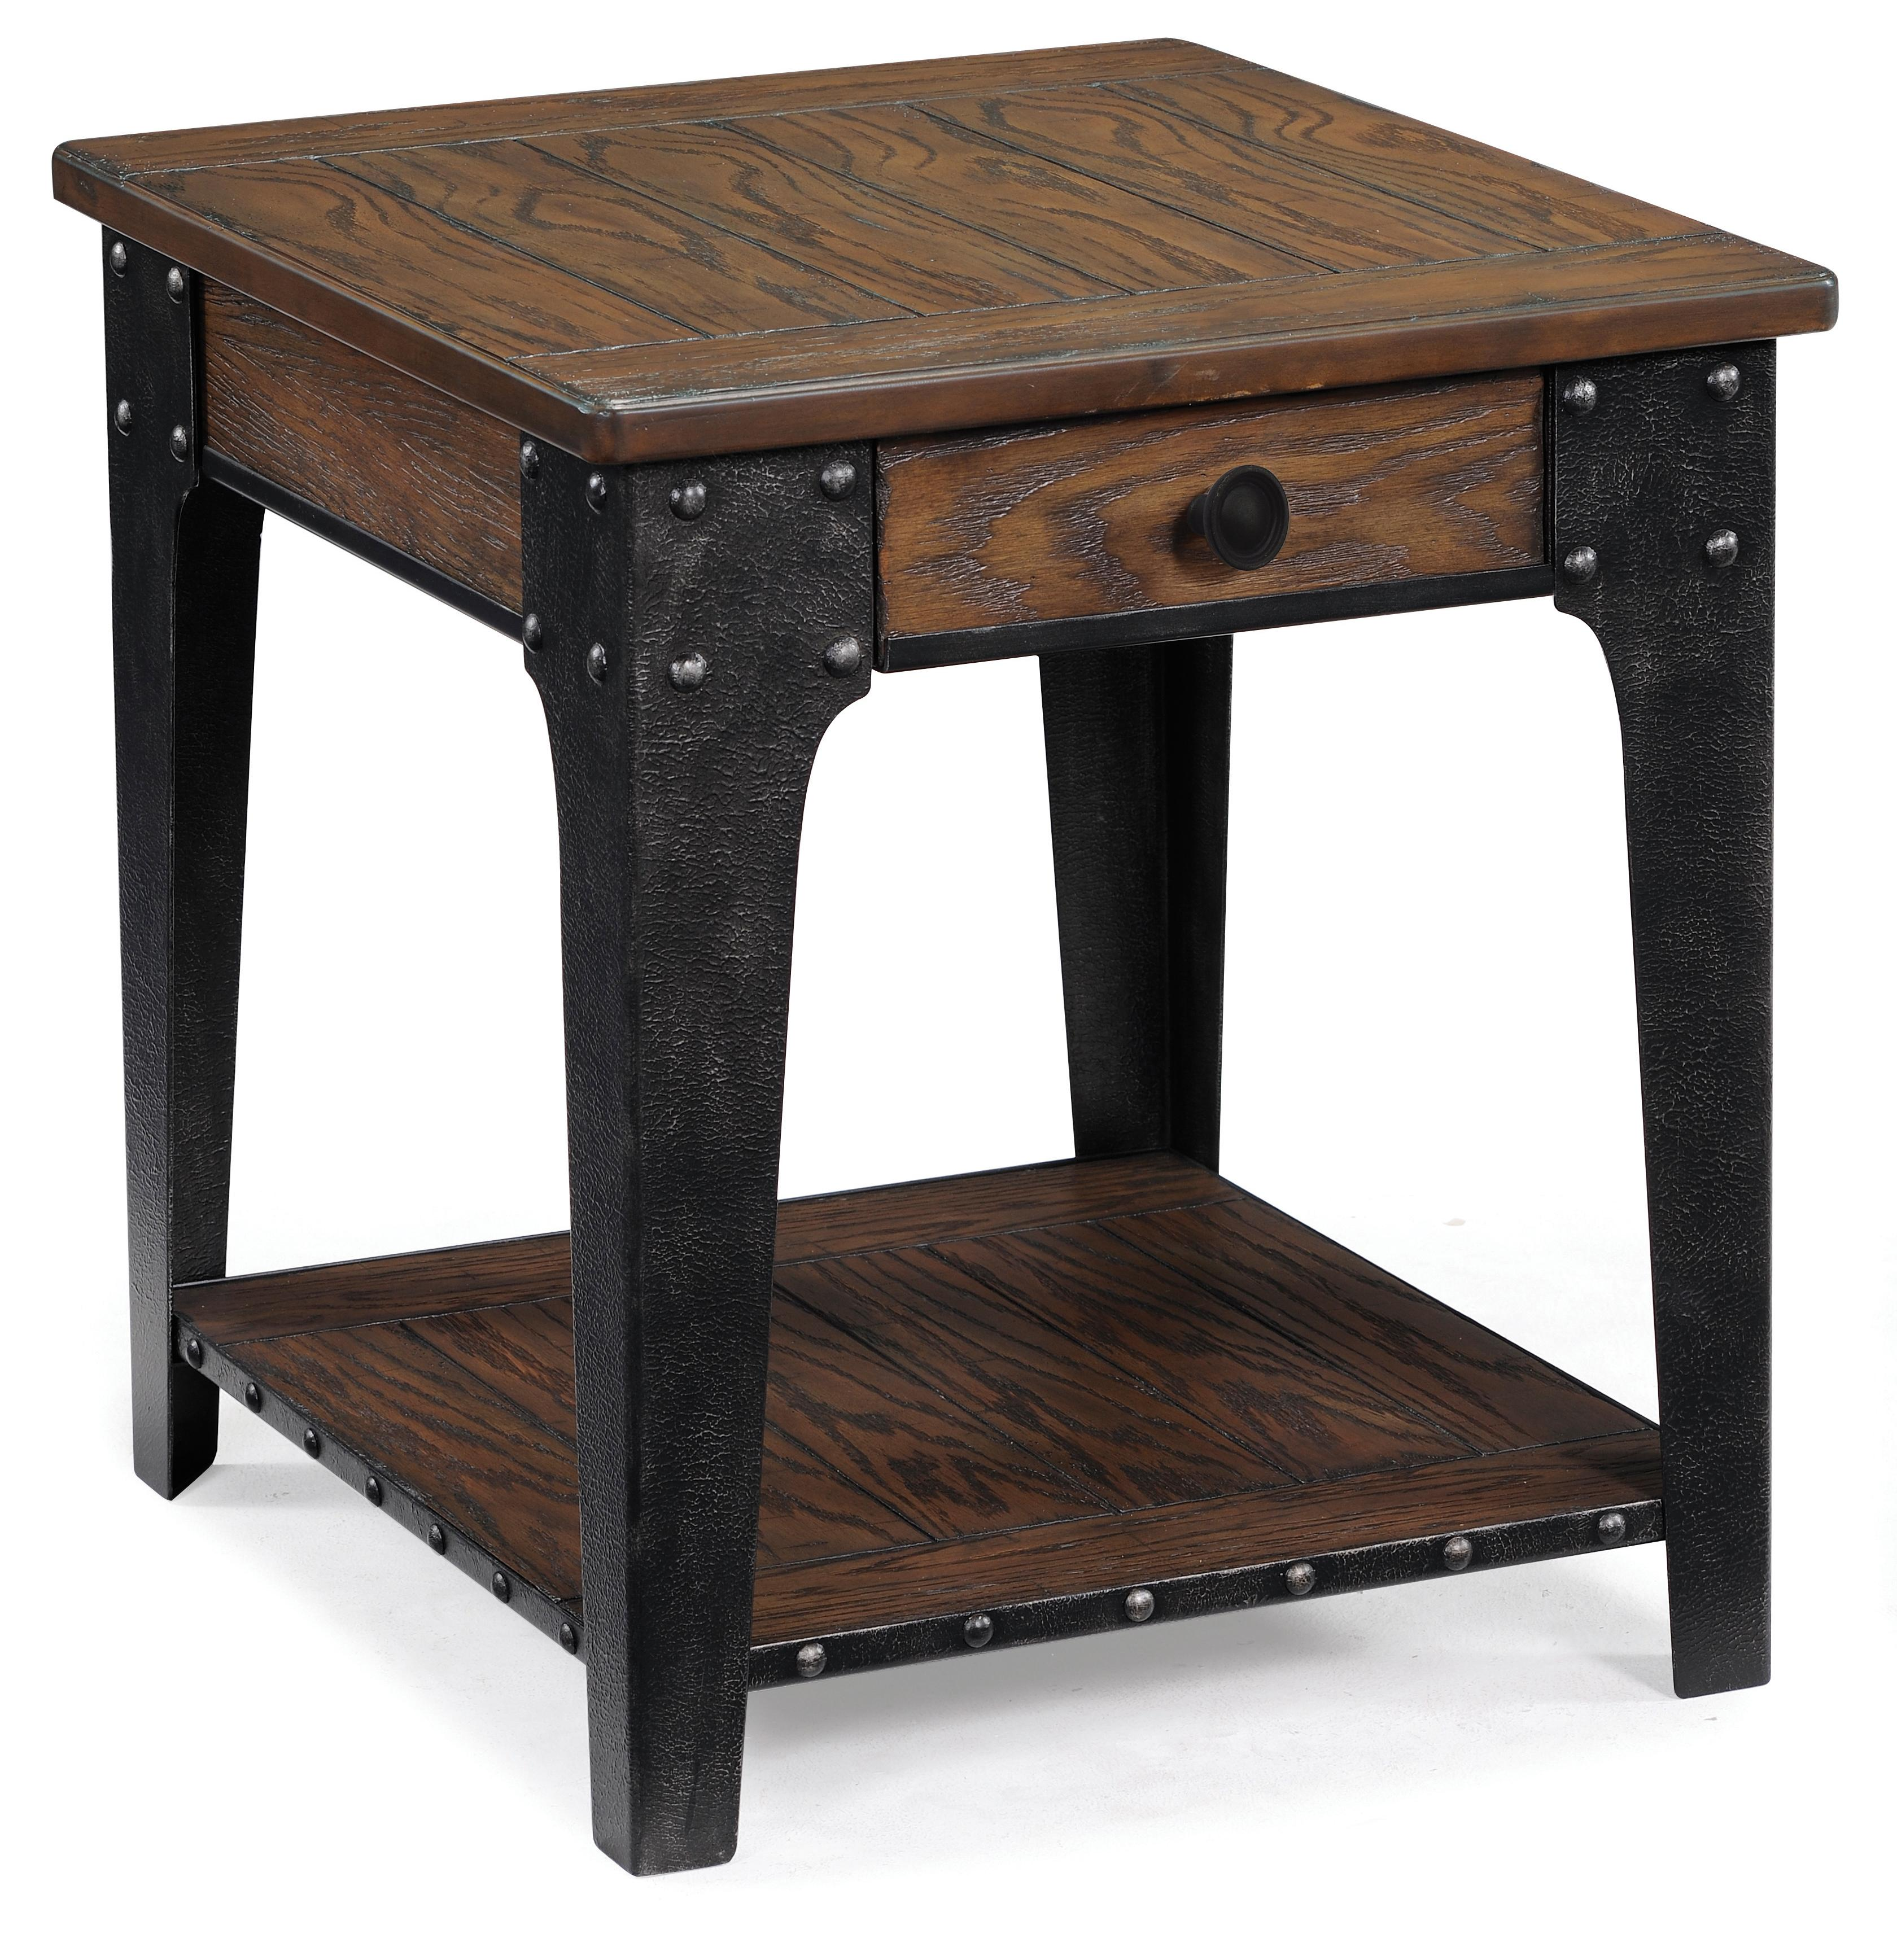 Magnussen Home Lakehurst Rectangular End Table - Item Number: 1806-03